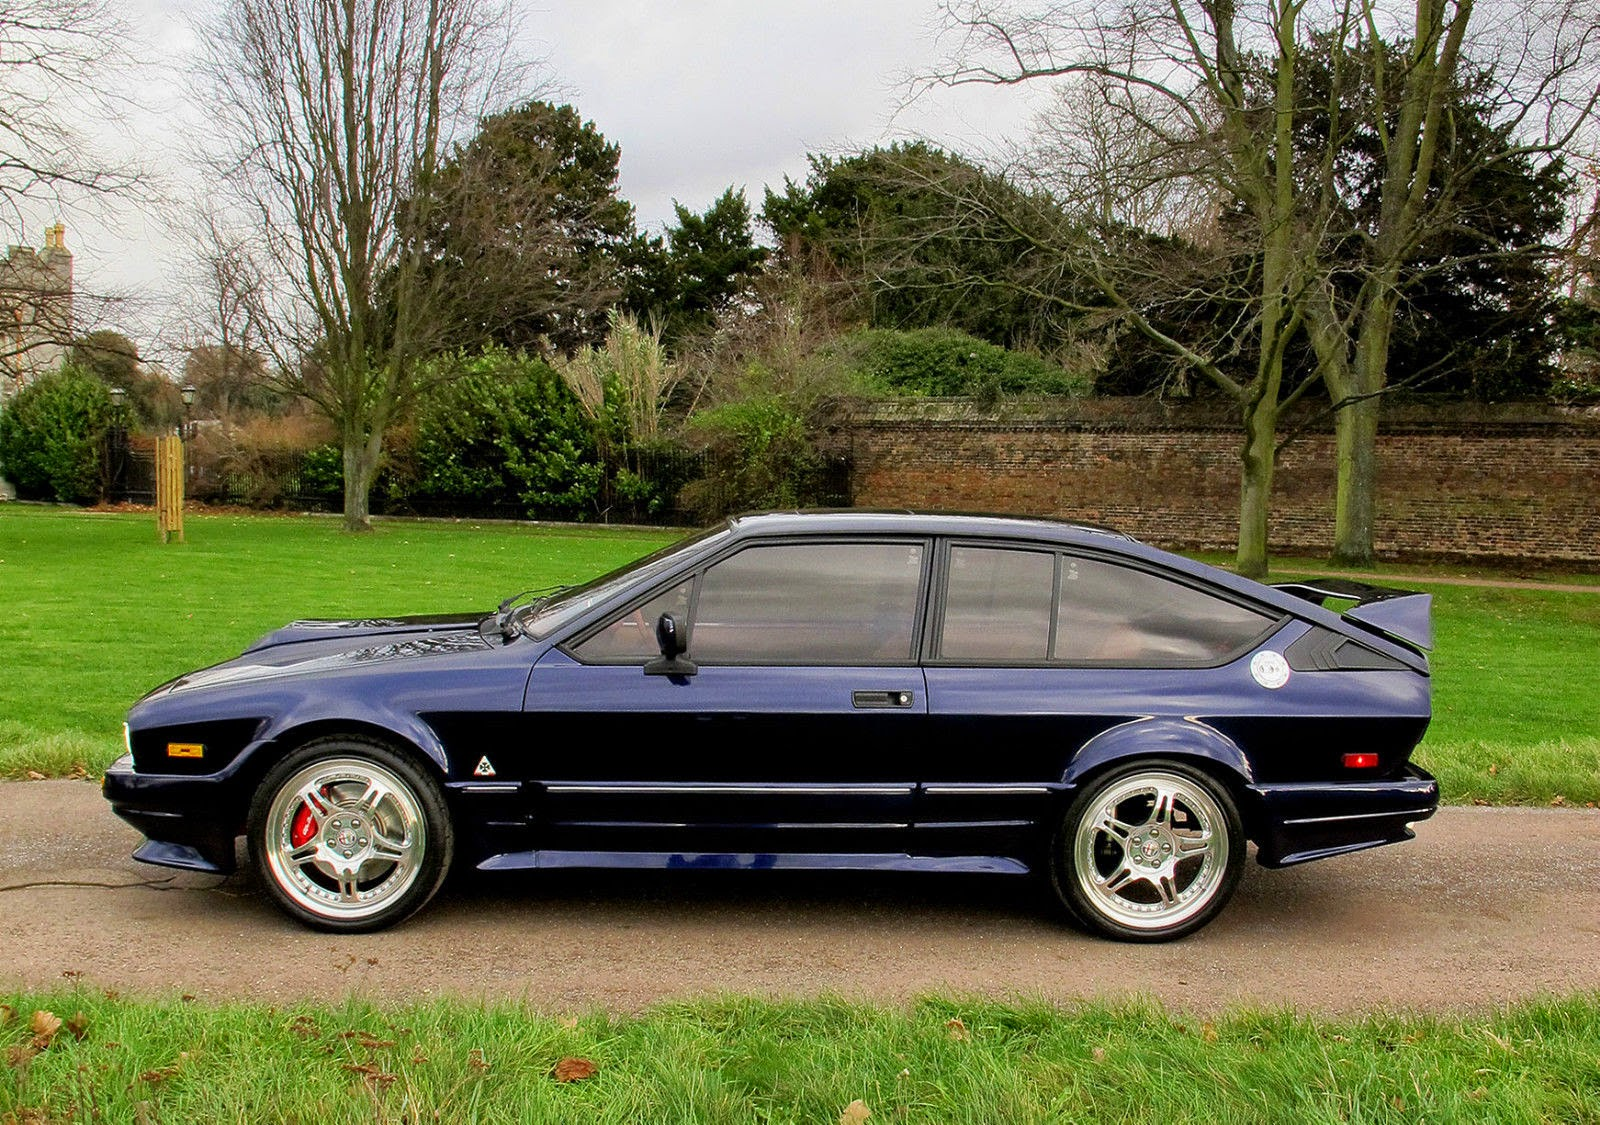 156 additionally 97237724 together with Viewtopic in addition 14779 Your Non Subaru Dream Project Cars also Alfa Romeo Gtv 6 2 5 Us Spec 116 1983 1986 Images 143920. on alfa romeo gtv6 2 5